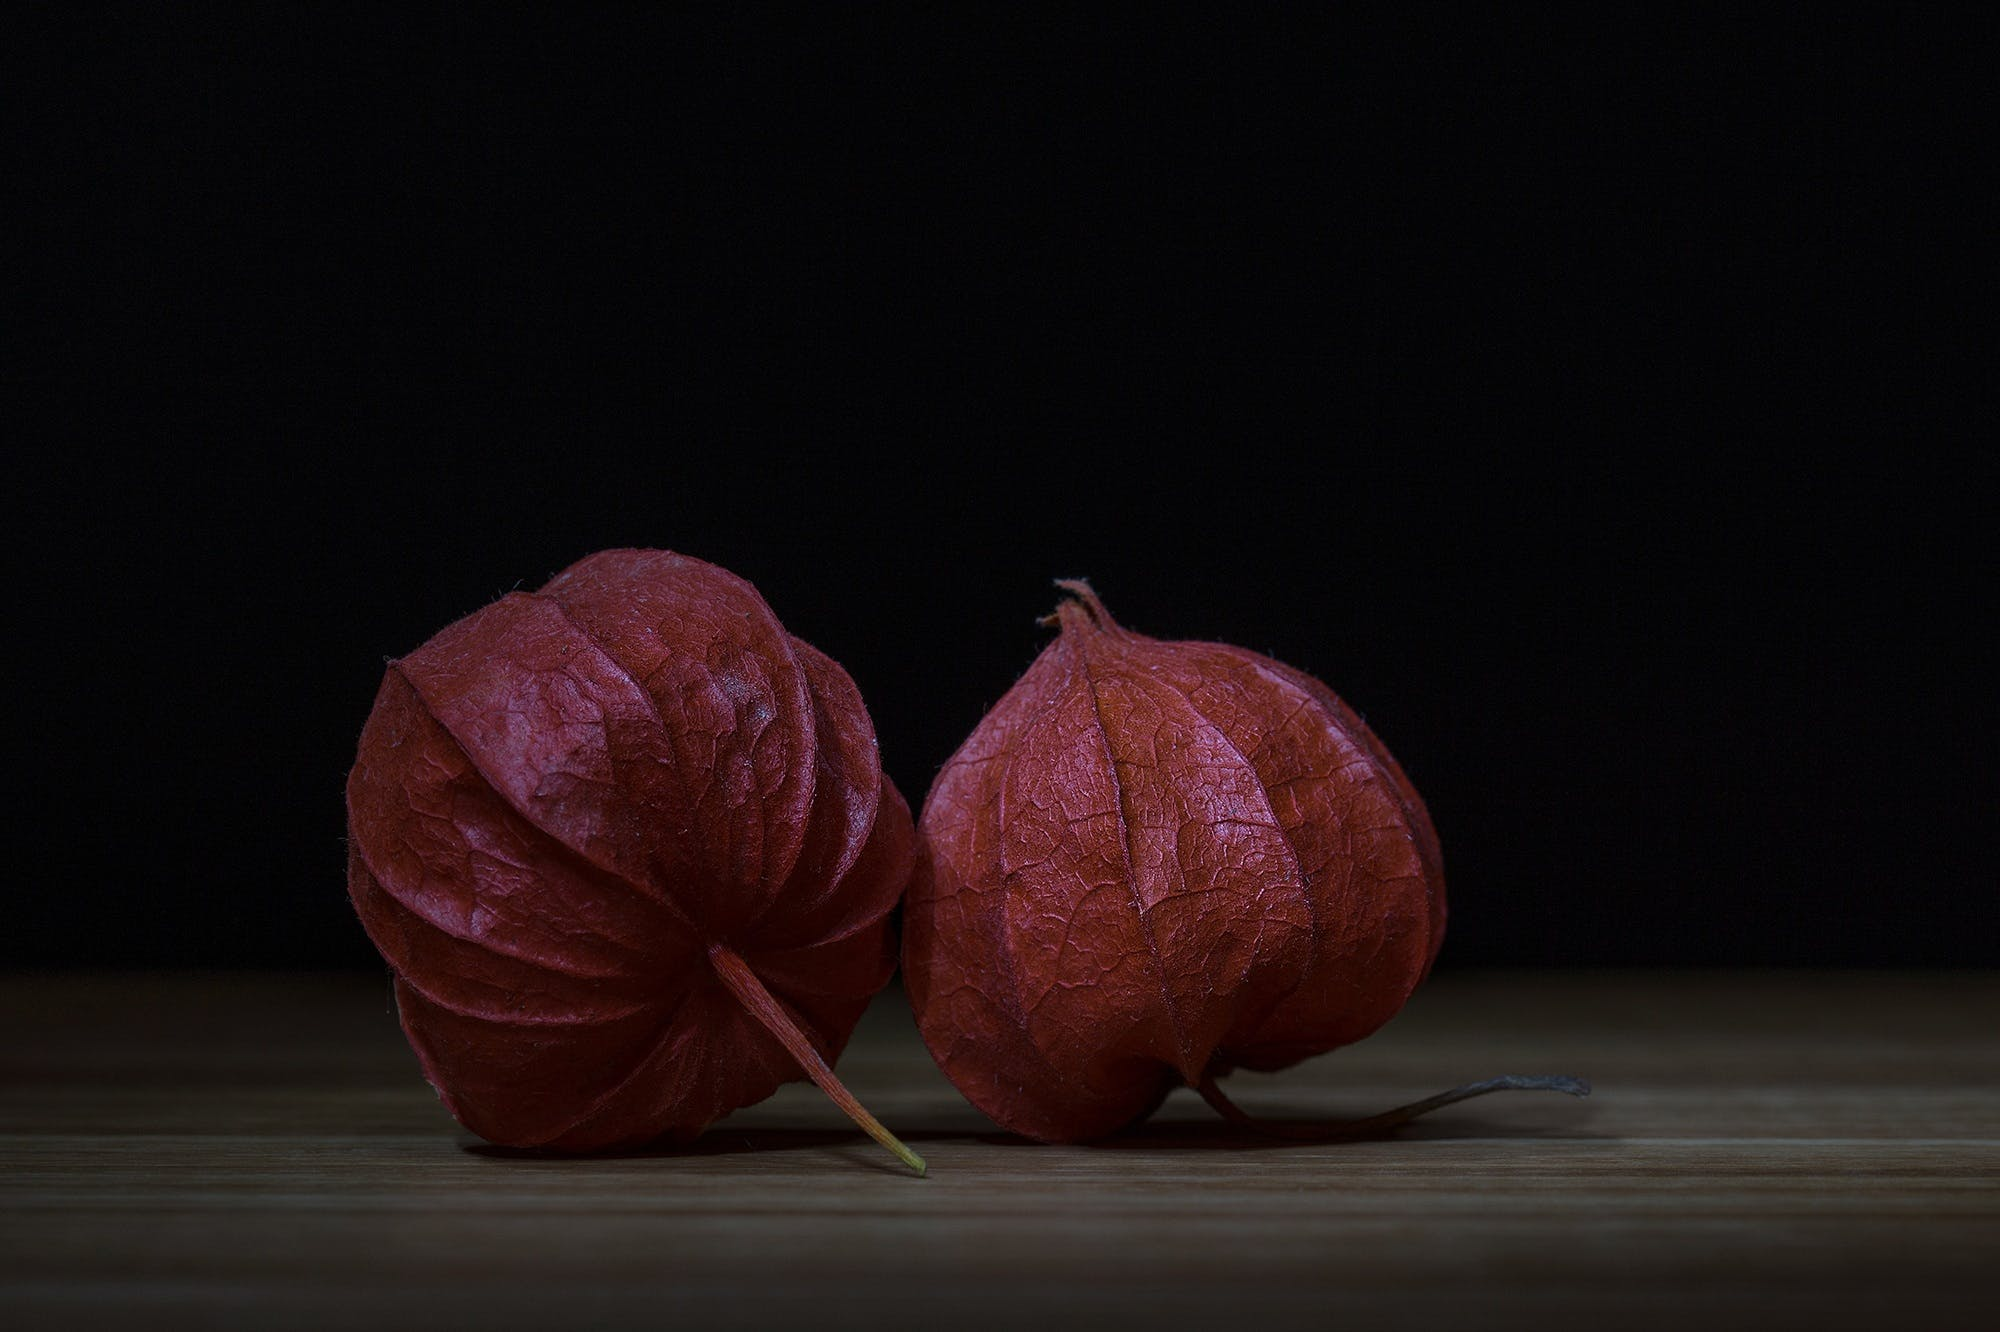 Two Red Physalis on Brown Surface